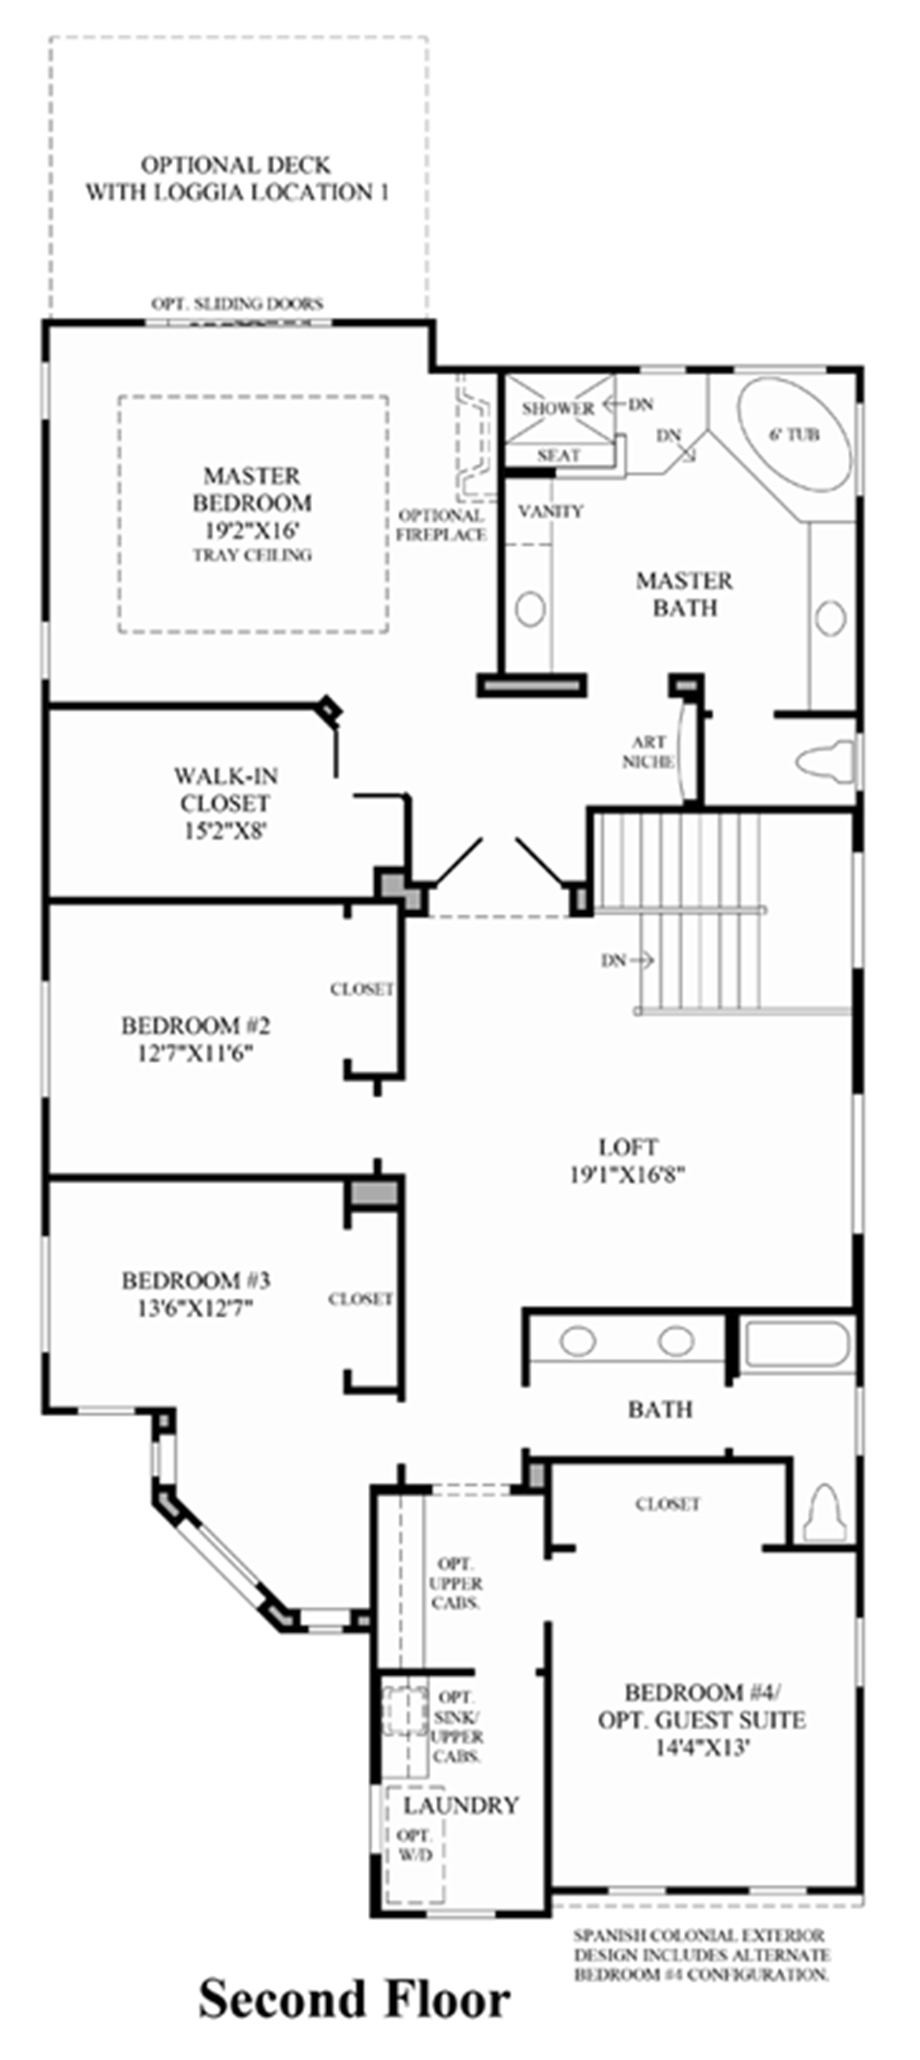 A Hotr Readers Revised Floor Plans To A 17000 Square Foot Mansion together with Benefits Of One Story House Plans besides Handicap Accessible House Plans 1 Bedroom House Design And besides Mediterranean House Plans Pulte furthermore I0000cP p. on mediterranean house plans with stone homes